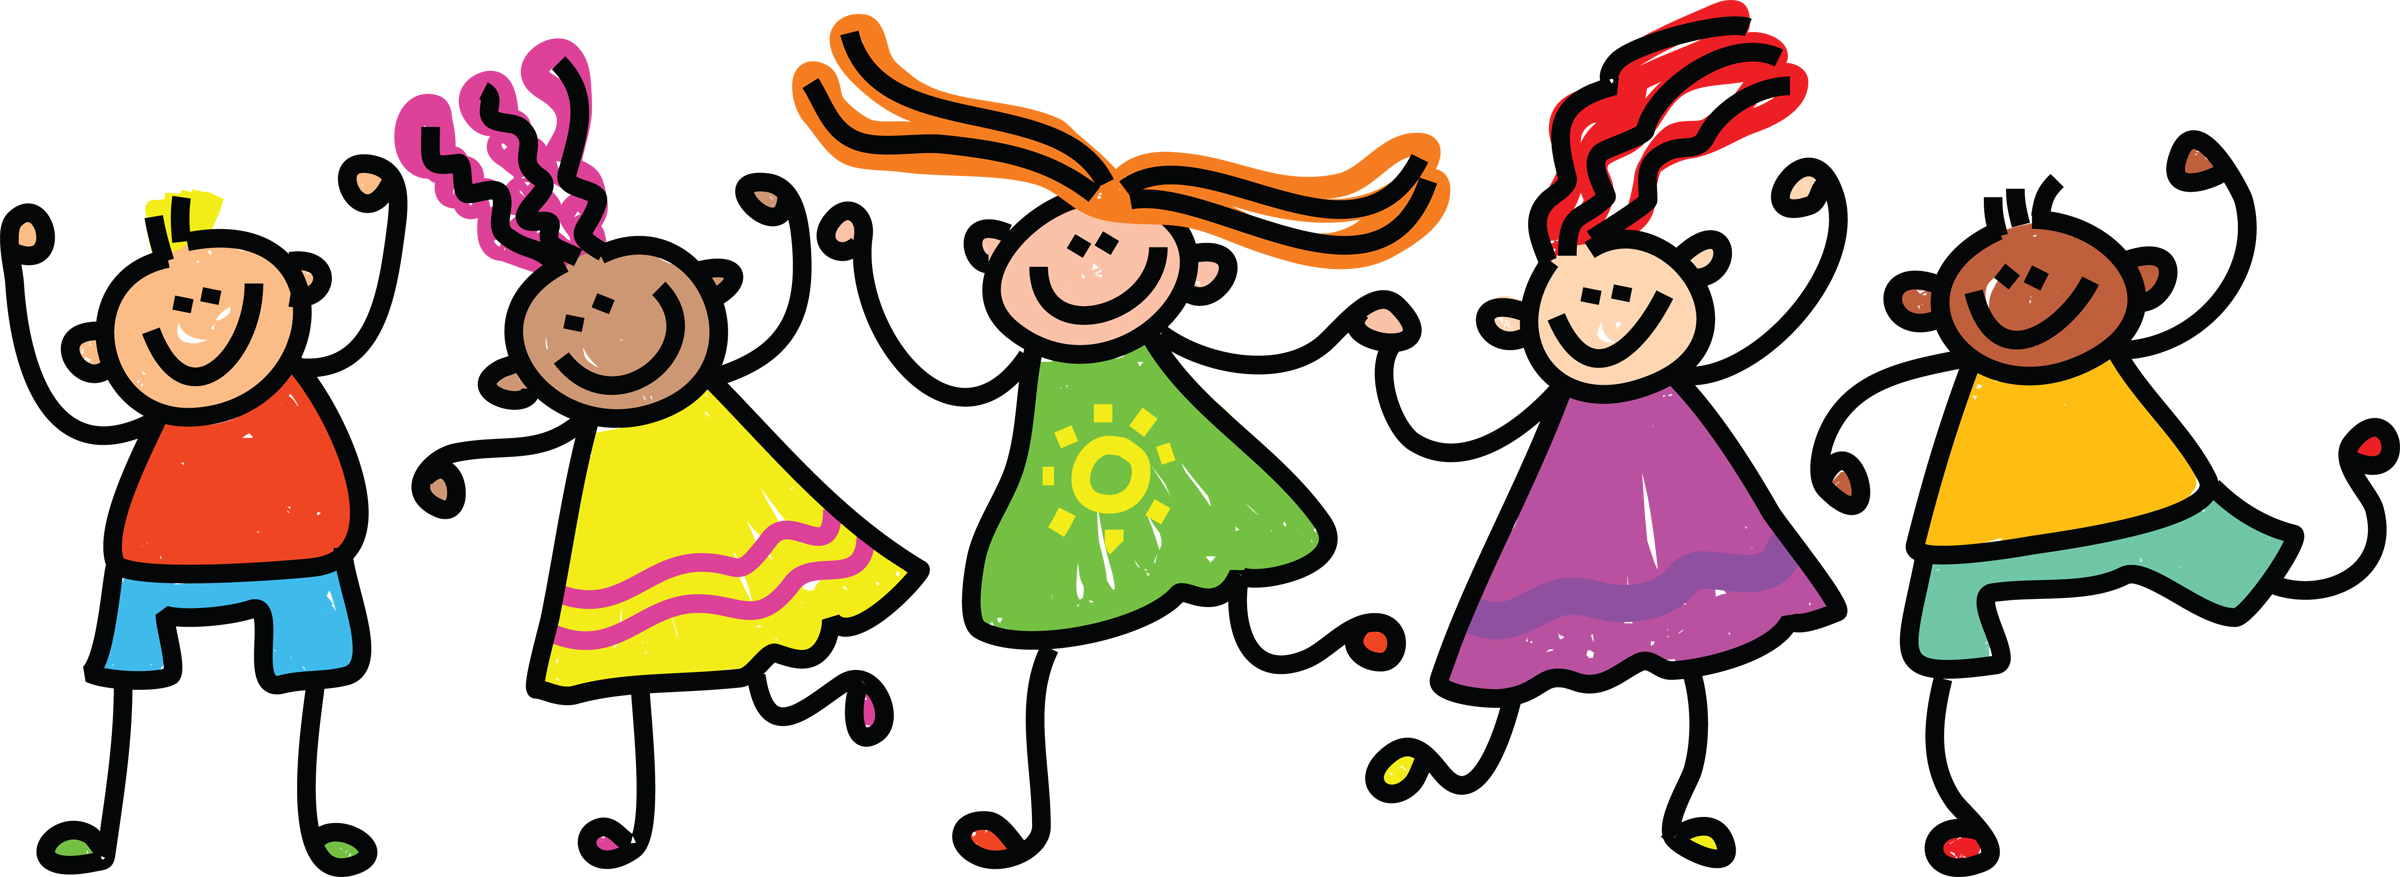 Free happy student download. Friendly clipart toddler friend